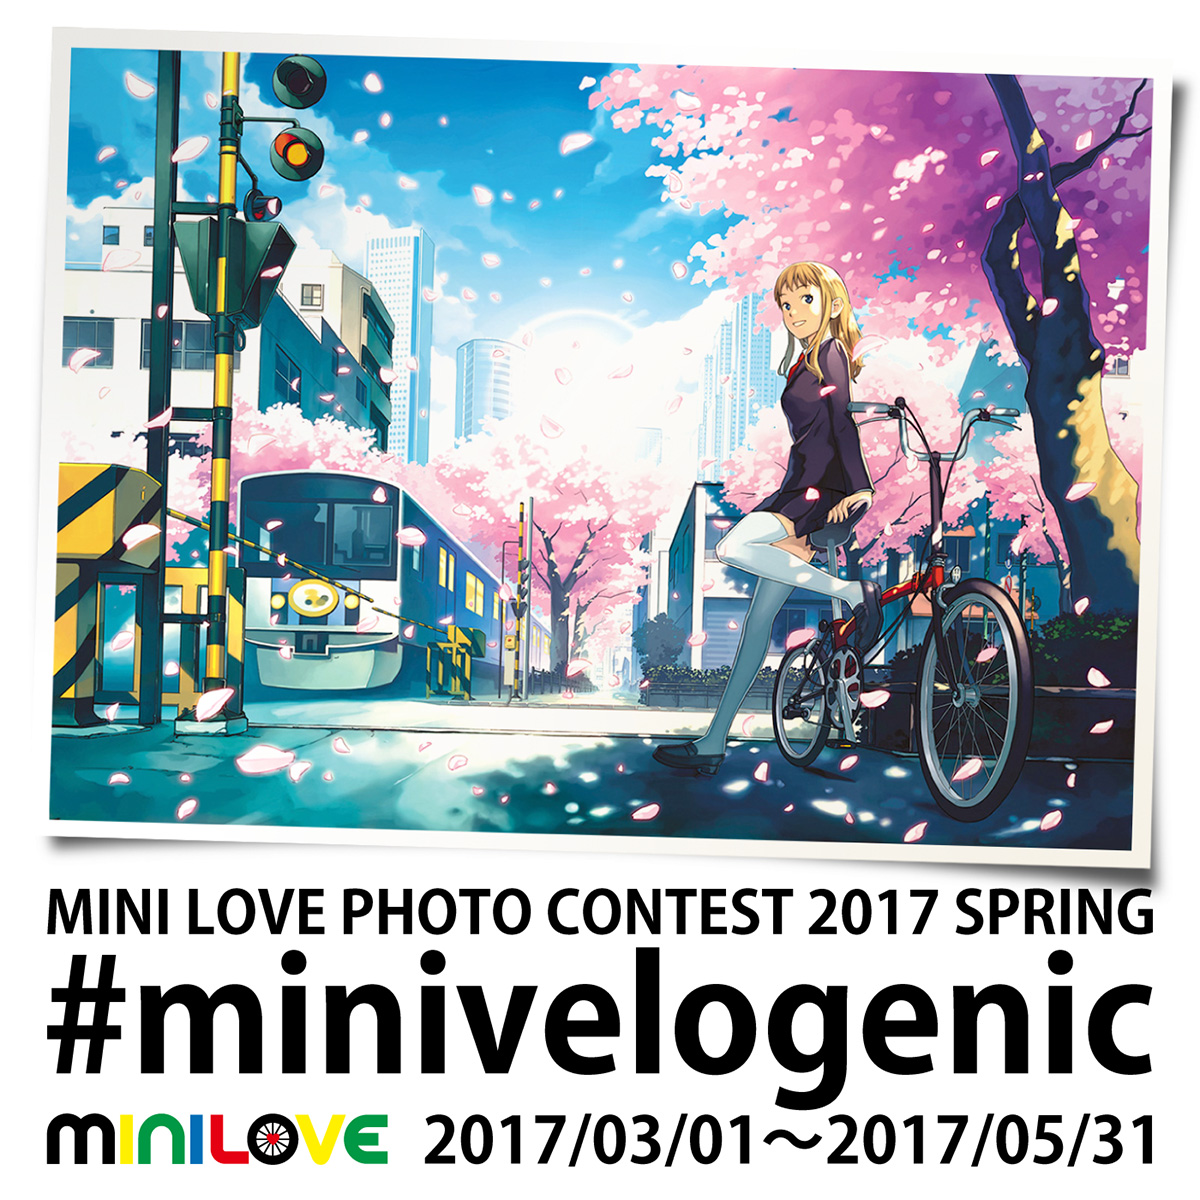 minivelogenic minilove photocontest